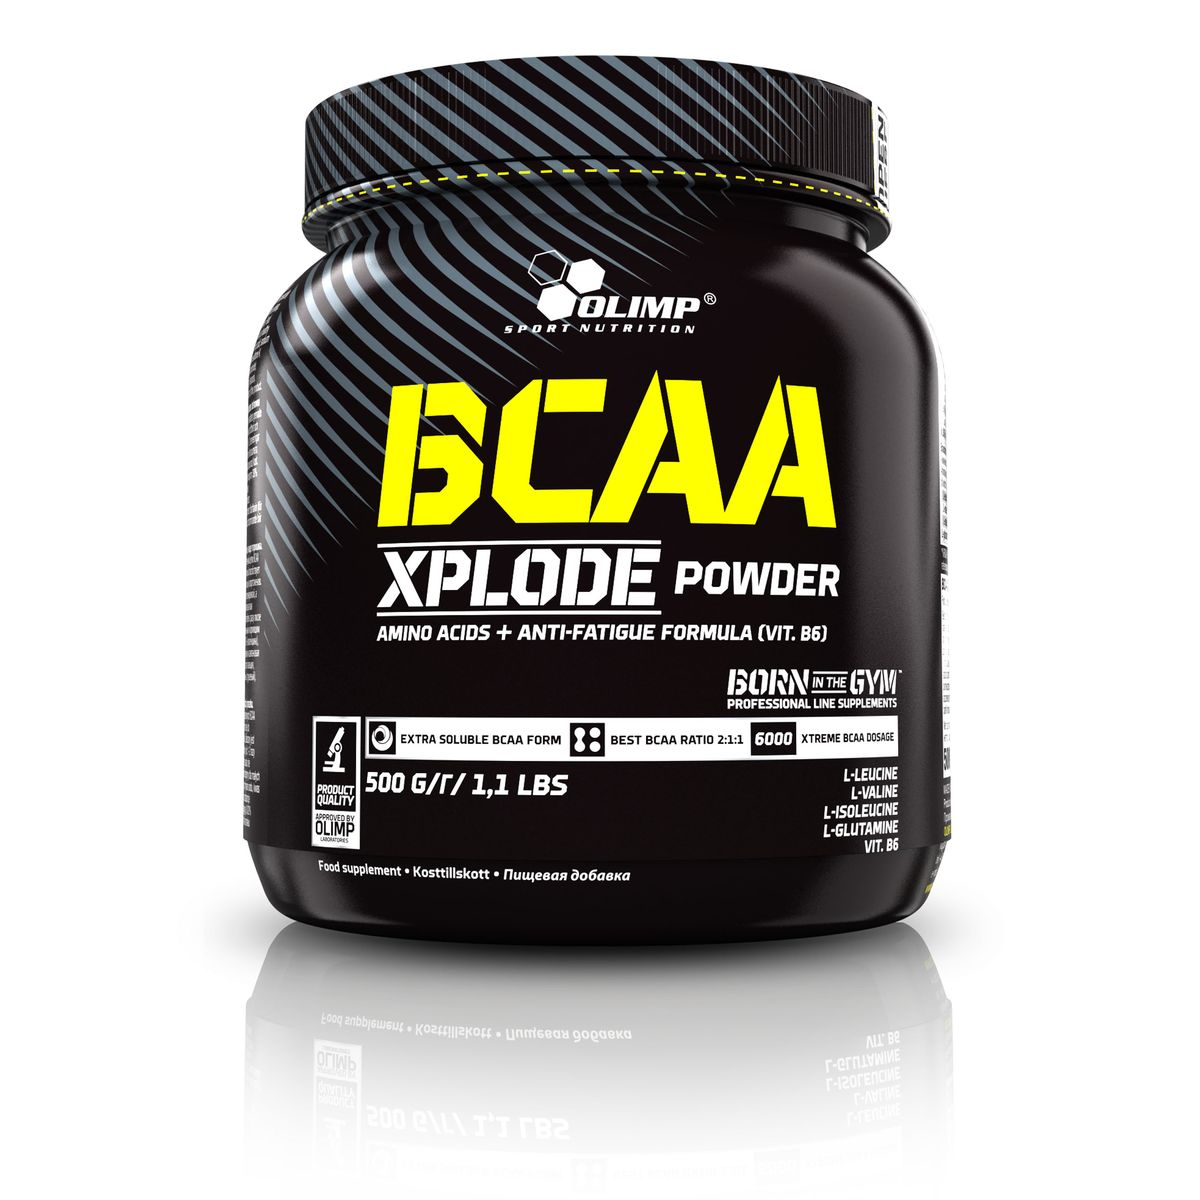 Аминокислотный комплекс Olimp Sport Nutrition BCAA Xplode Powder, лимон, 500 г креатин olimp creatine xplode ананас 500 г